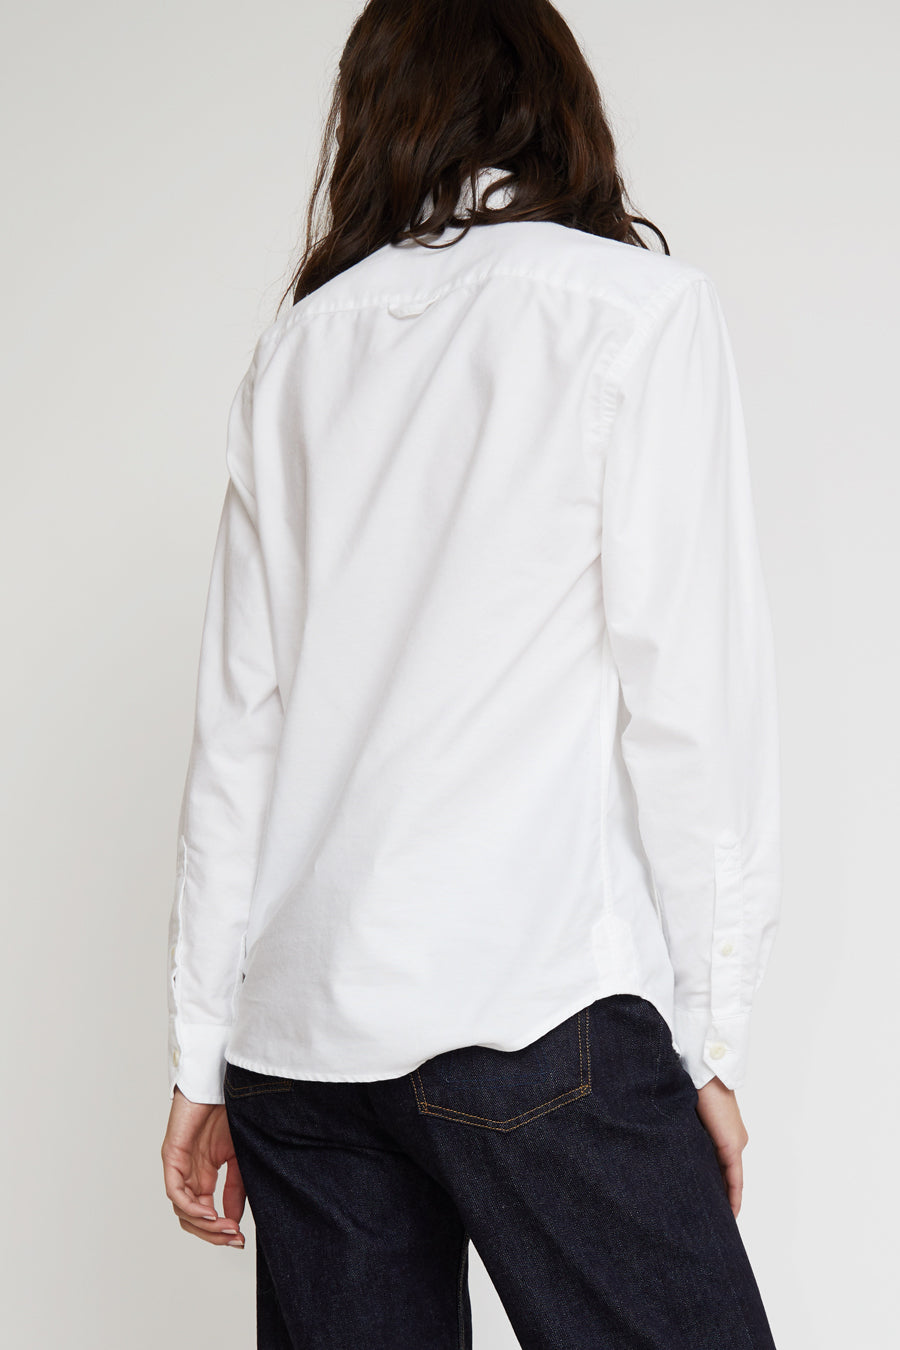 Girls of Dust Button Down Oxford Shirt in White